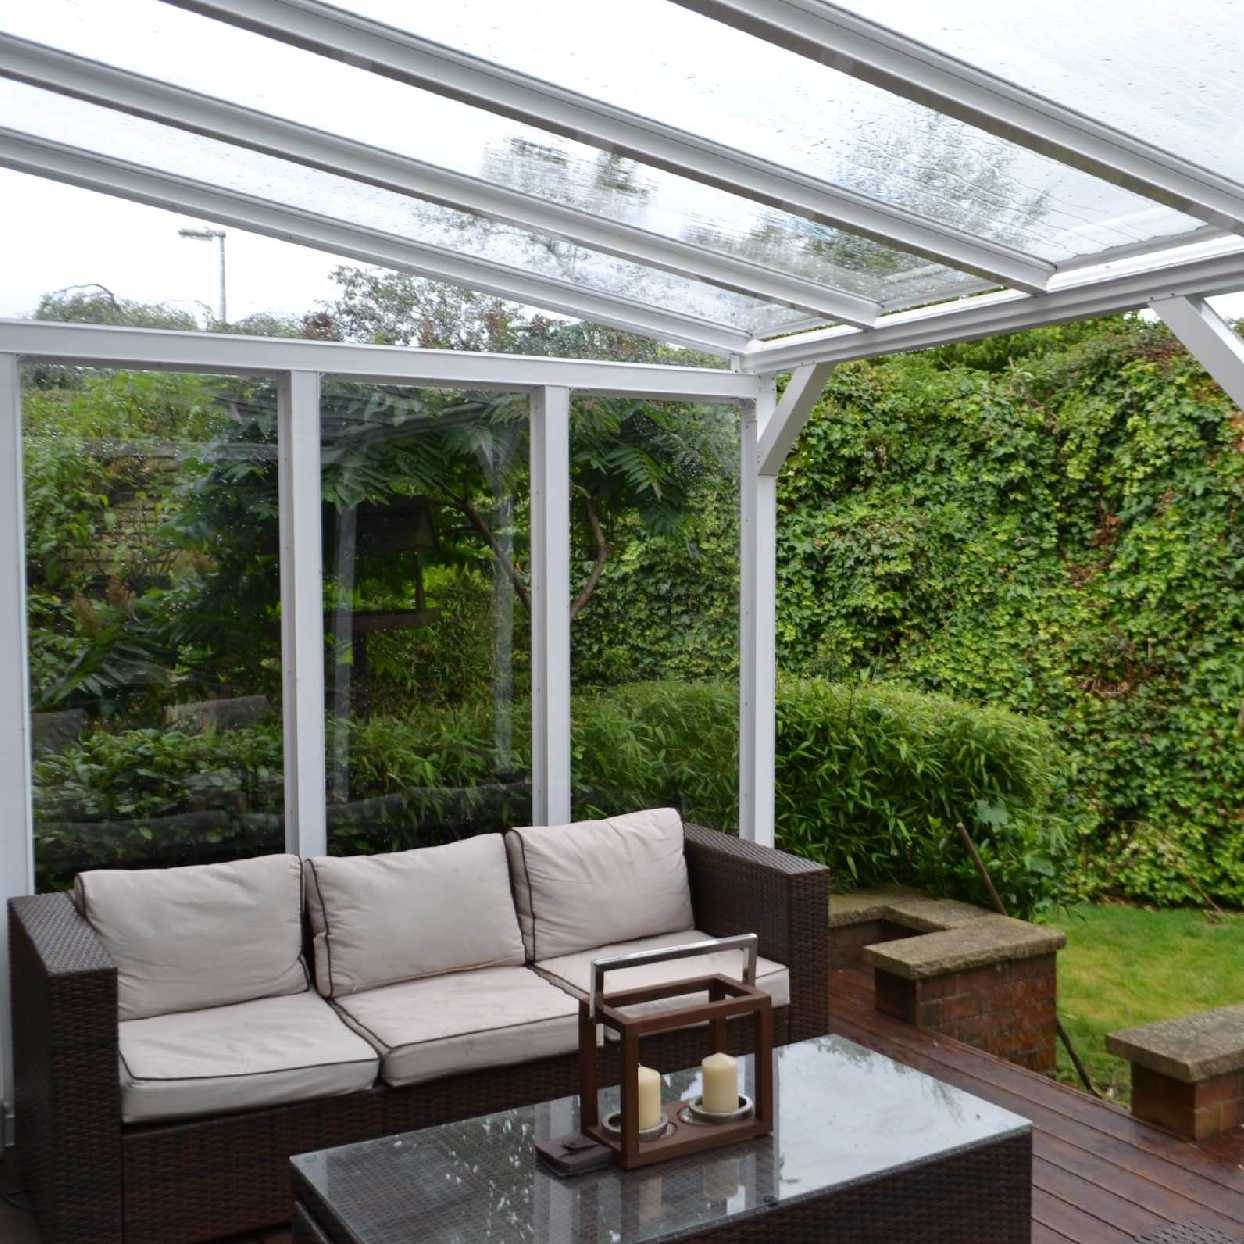 Omega Smart White Lean-To Canopy UNGLAZED for 6mm Glazing - 4.2m (W) x 1.5m (P), (3) Supporting Posts